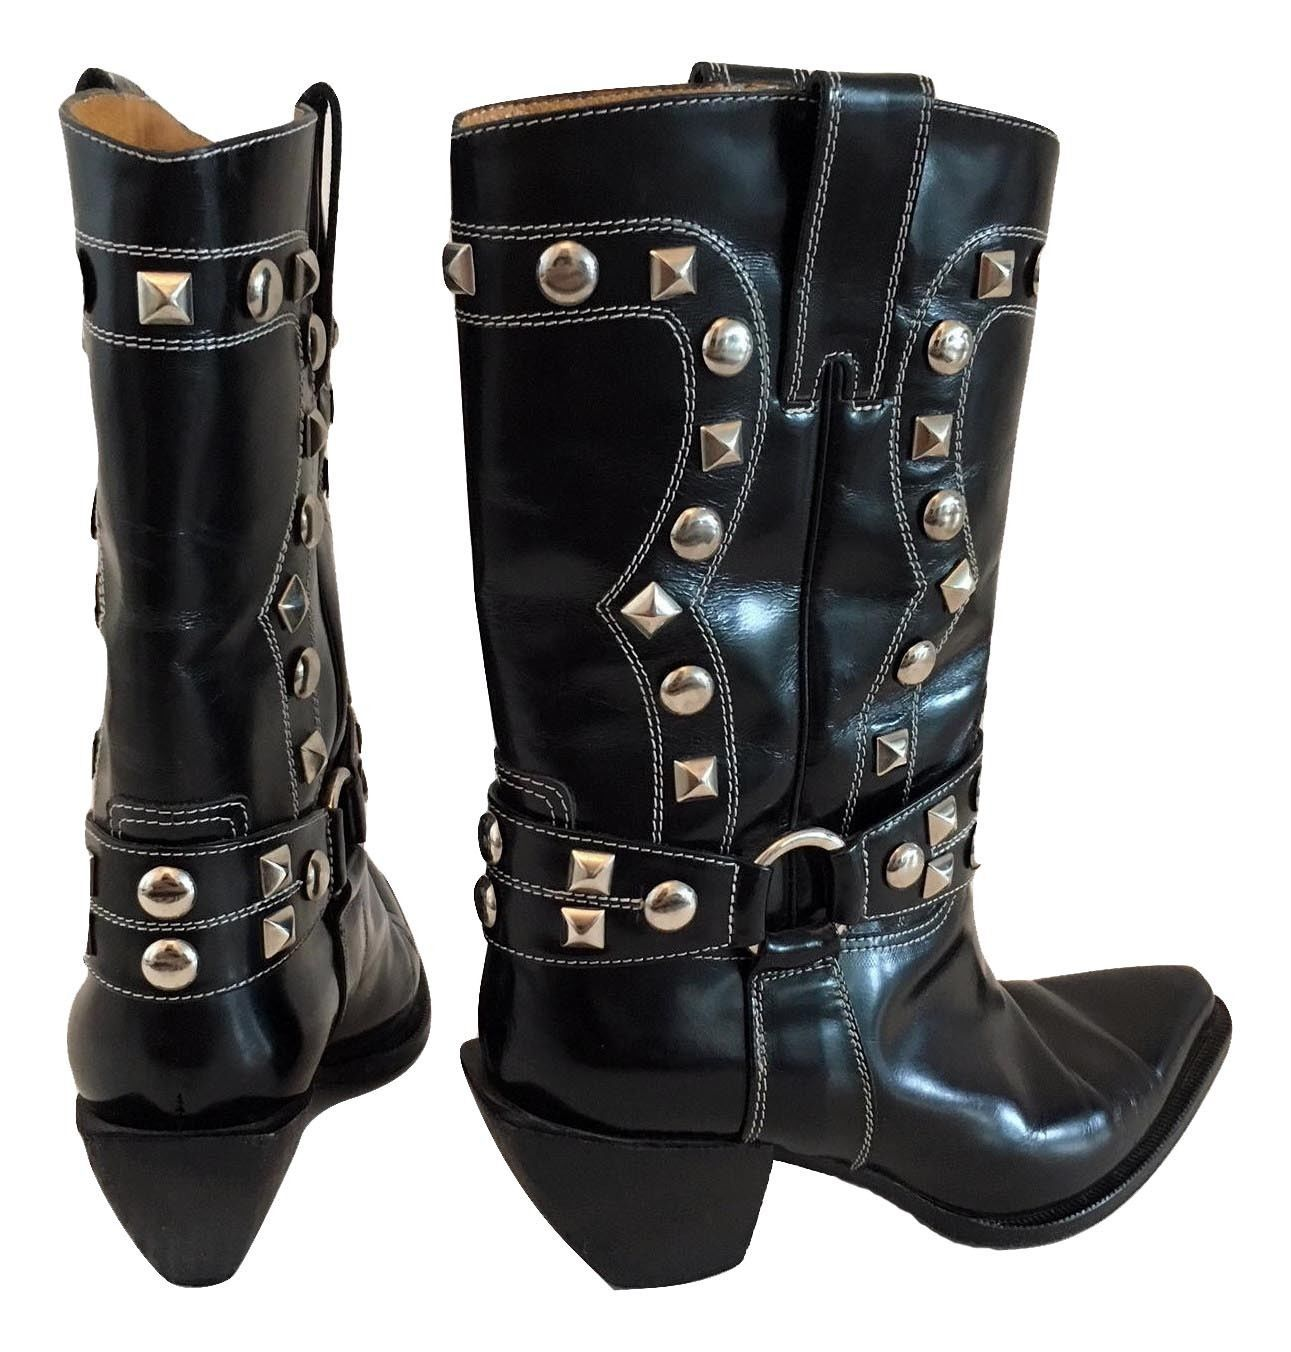 Donald J Pliner Western Couture Collection Black Silver Studded Boots 6